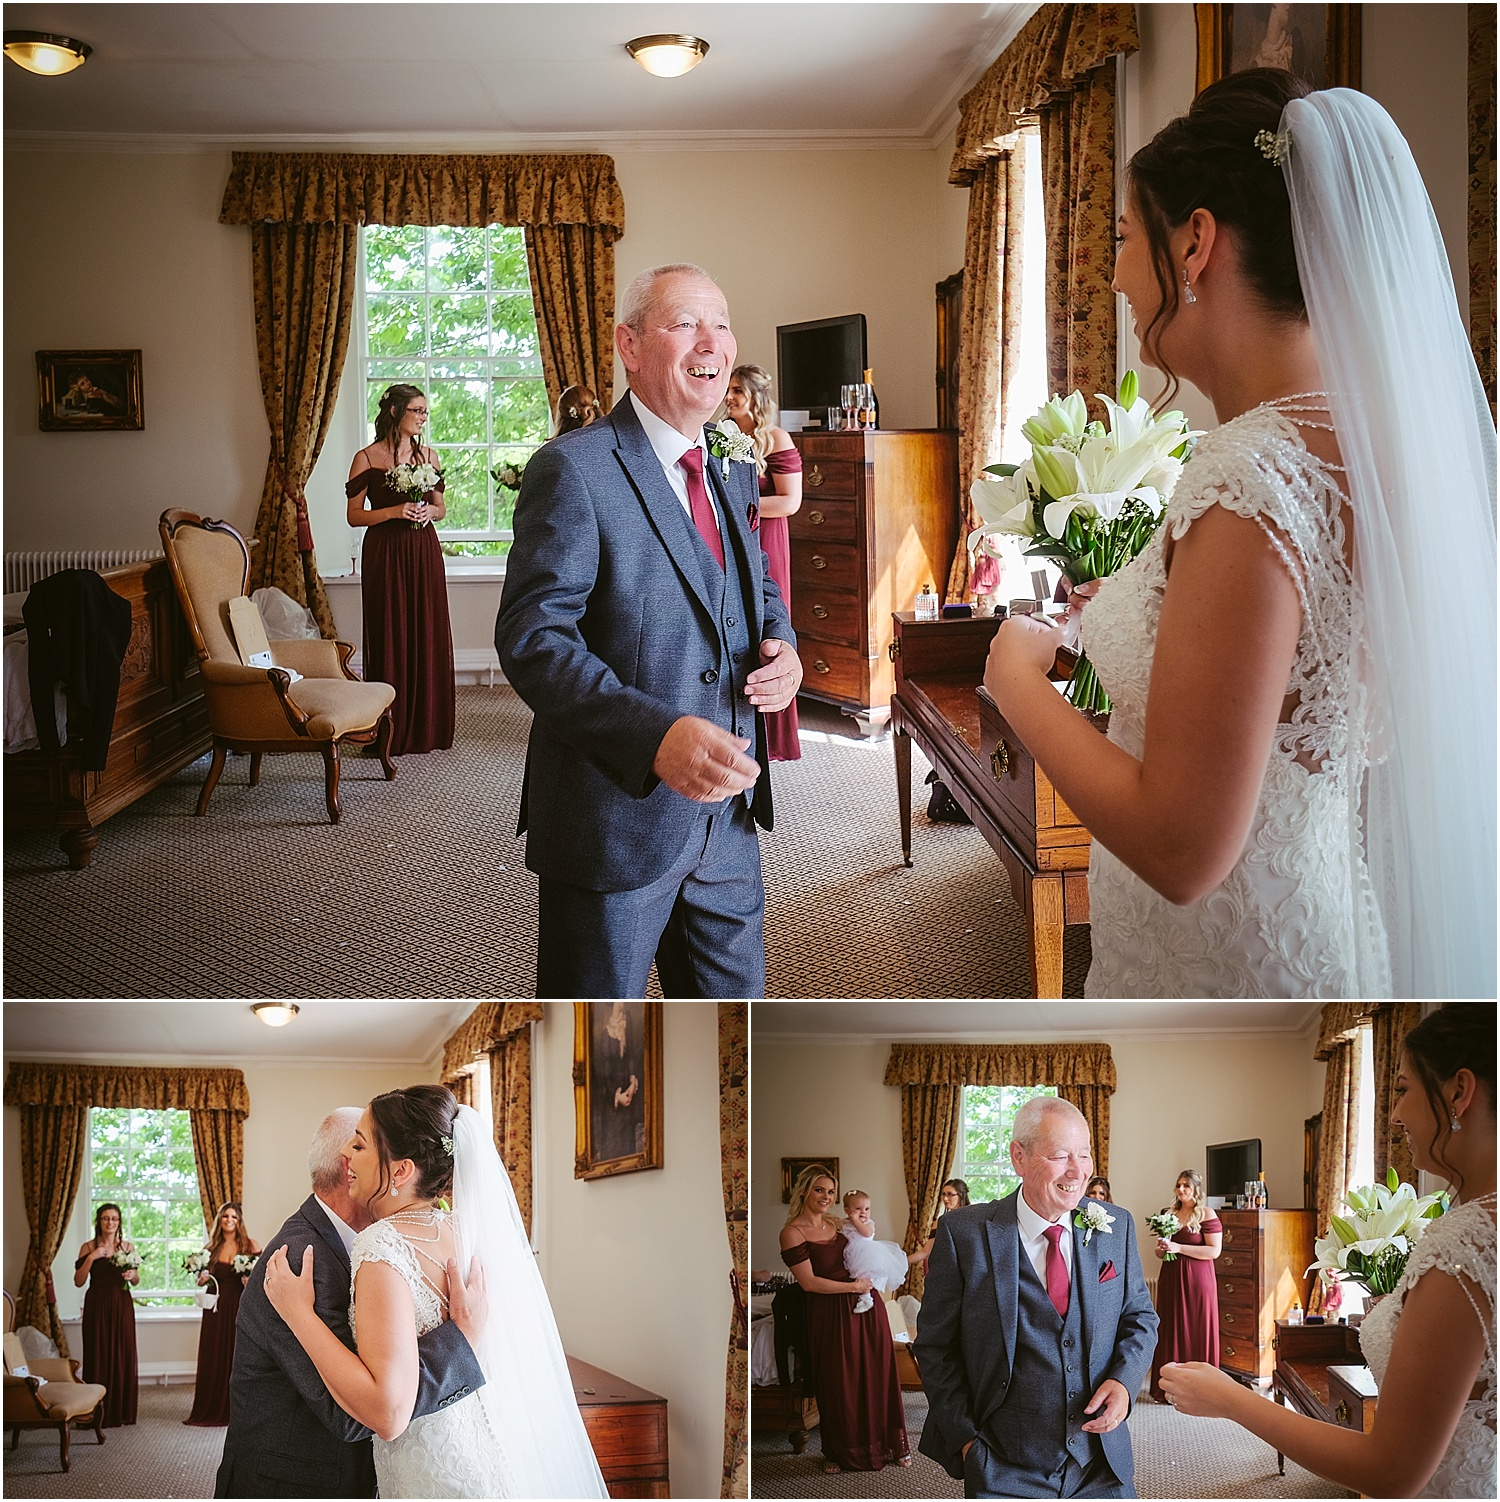 Wedding at Beamish Hall - wedding photography by www.2tonephotography.co.uk 127.jpg